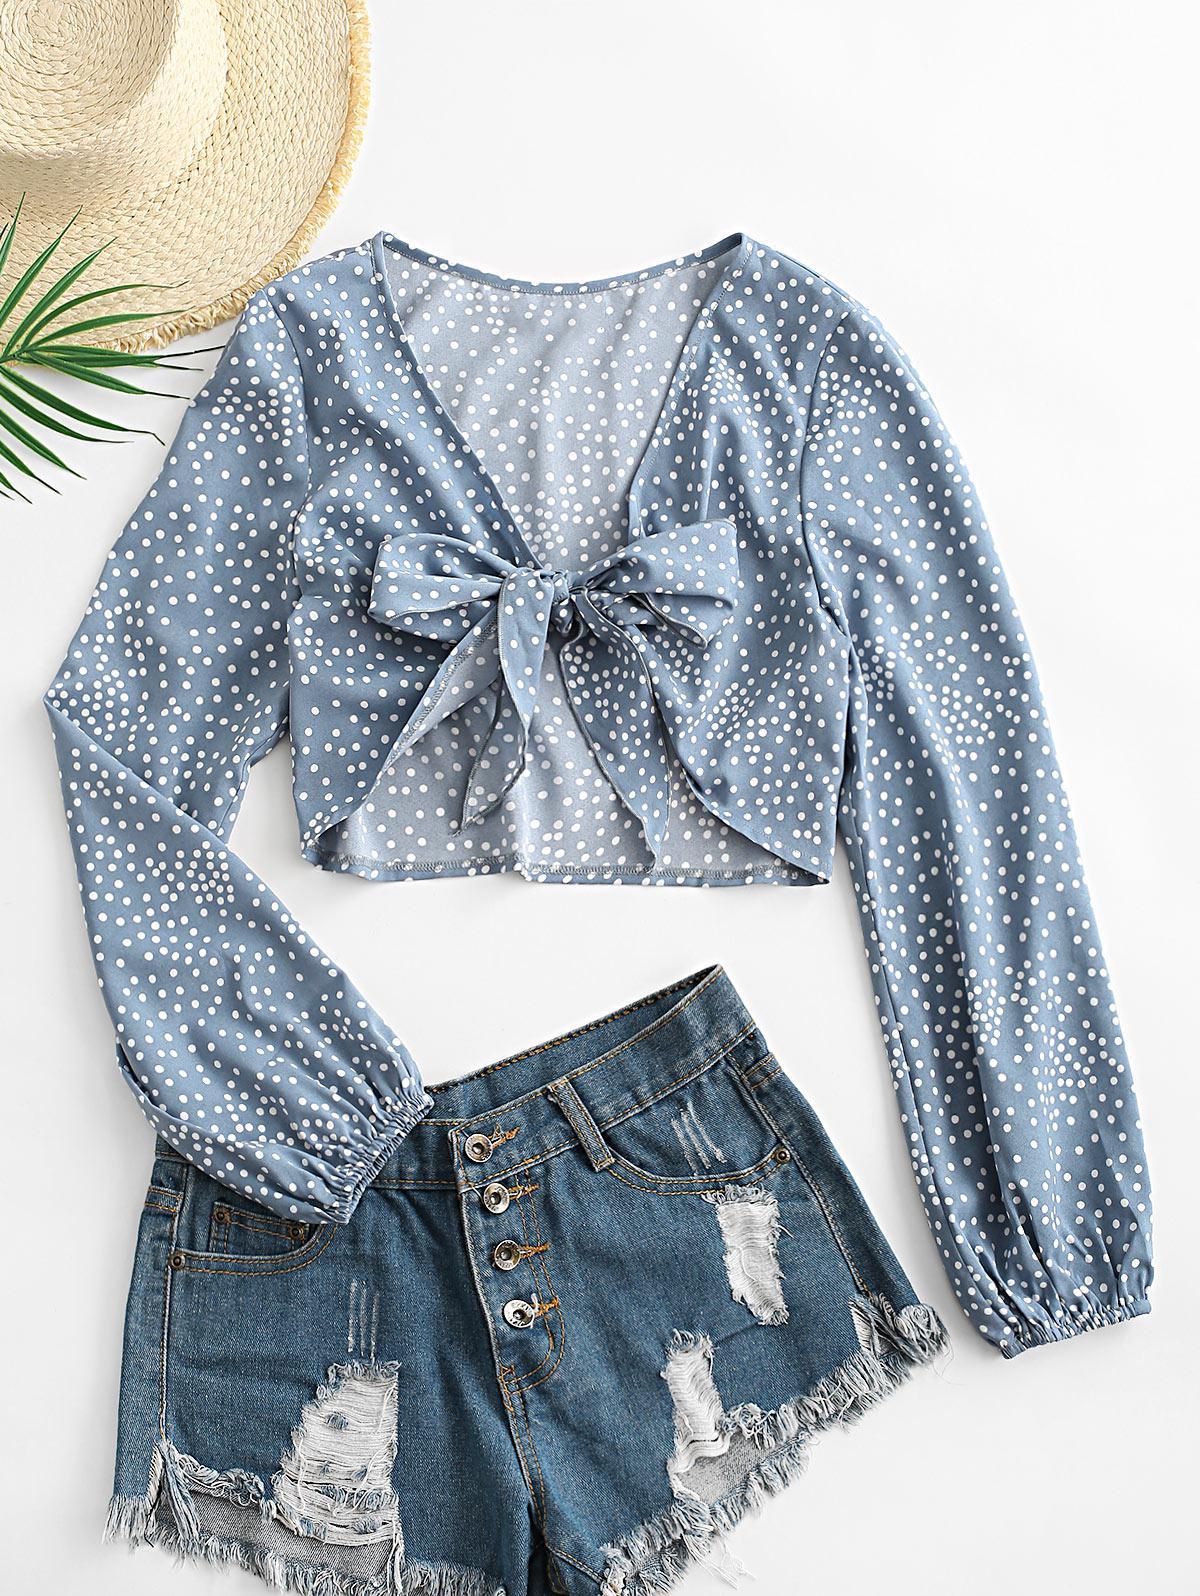 ZAFUL Polka Dot Knotted Plunge Blouse